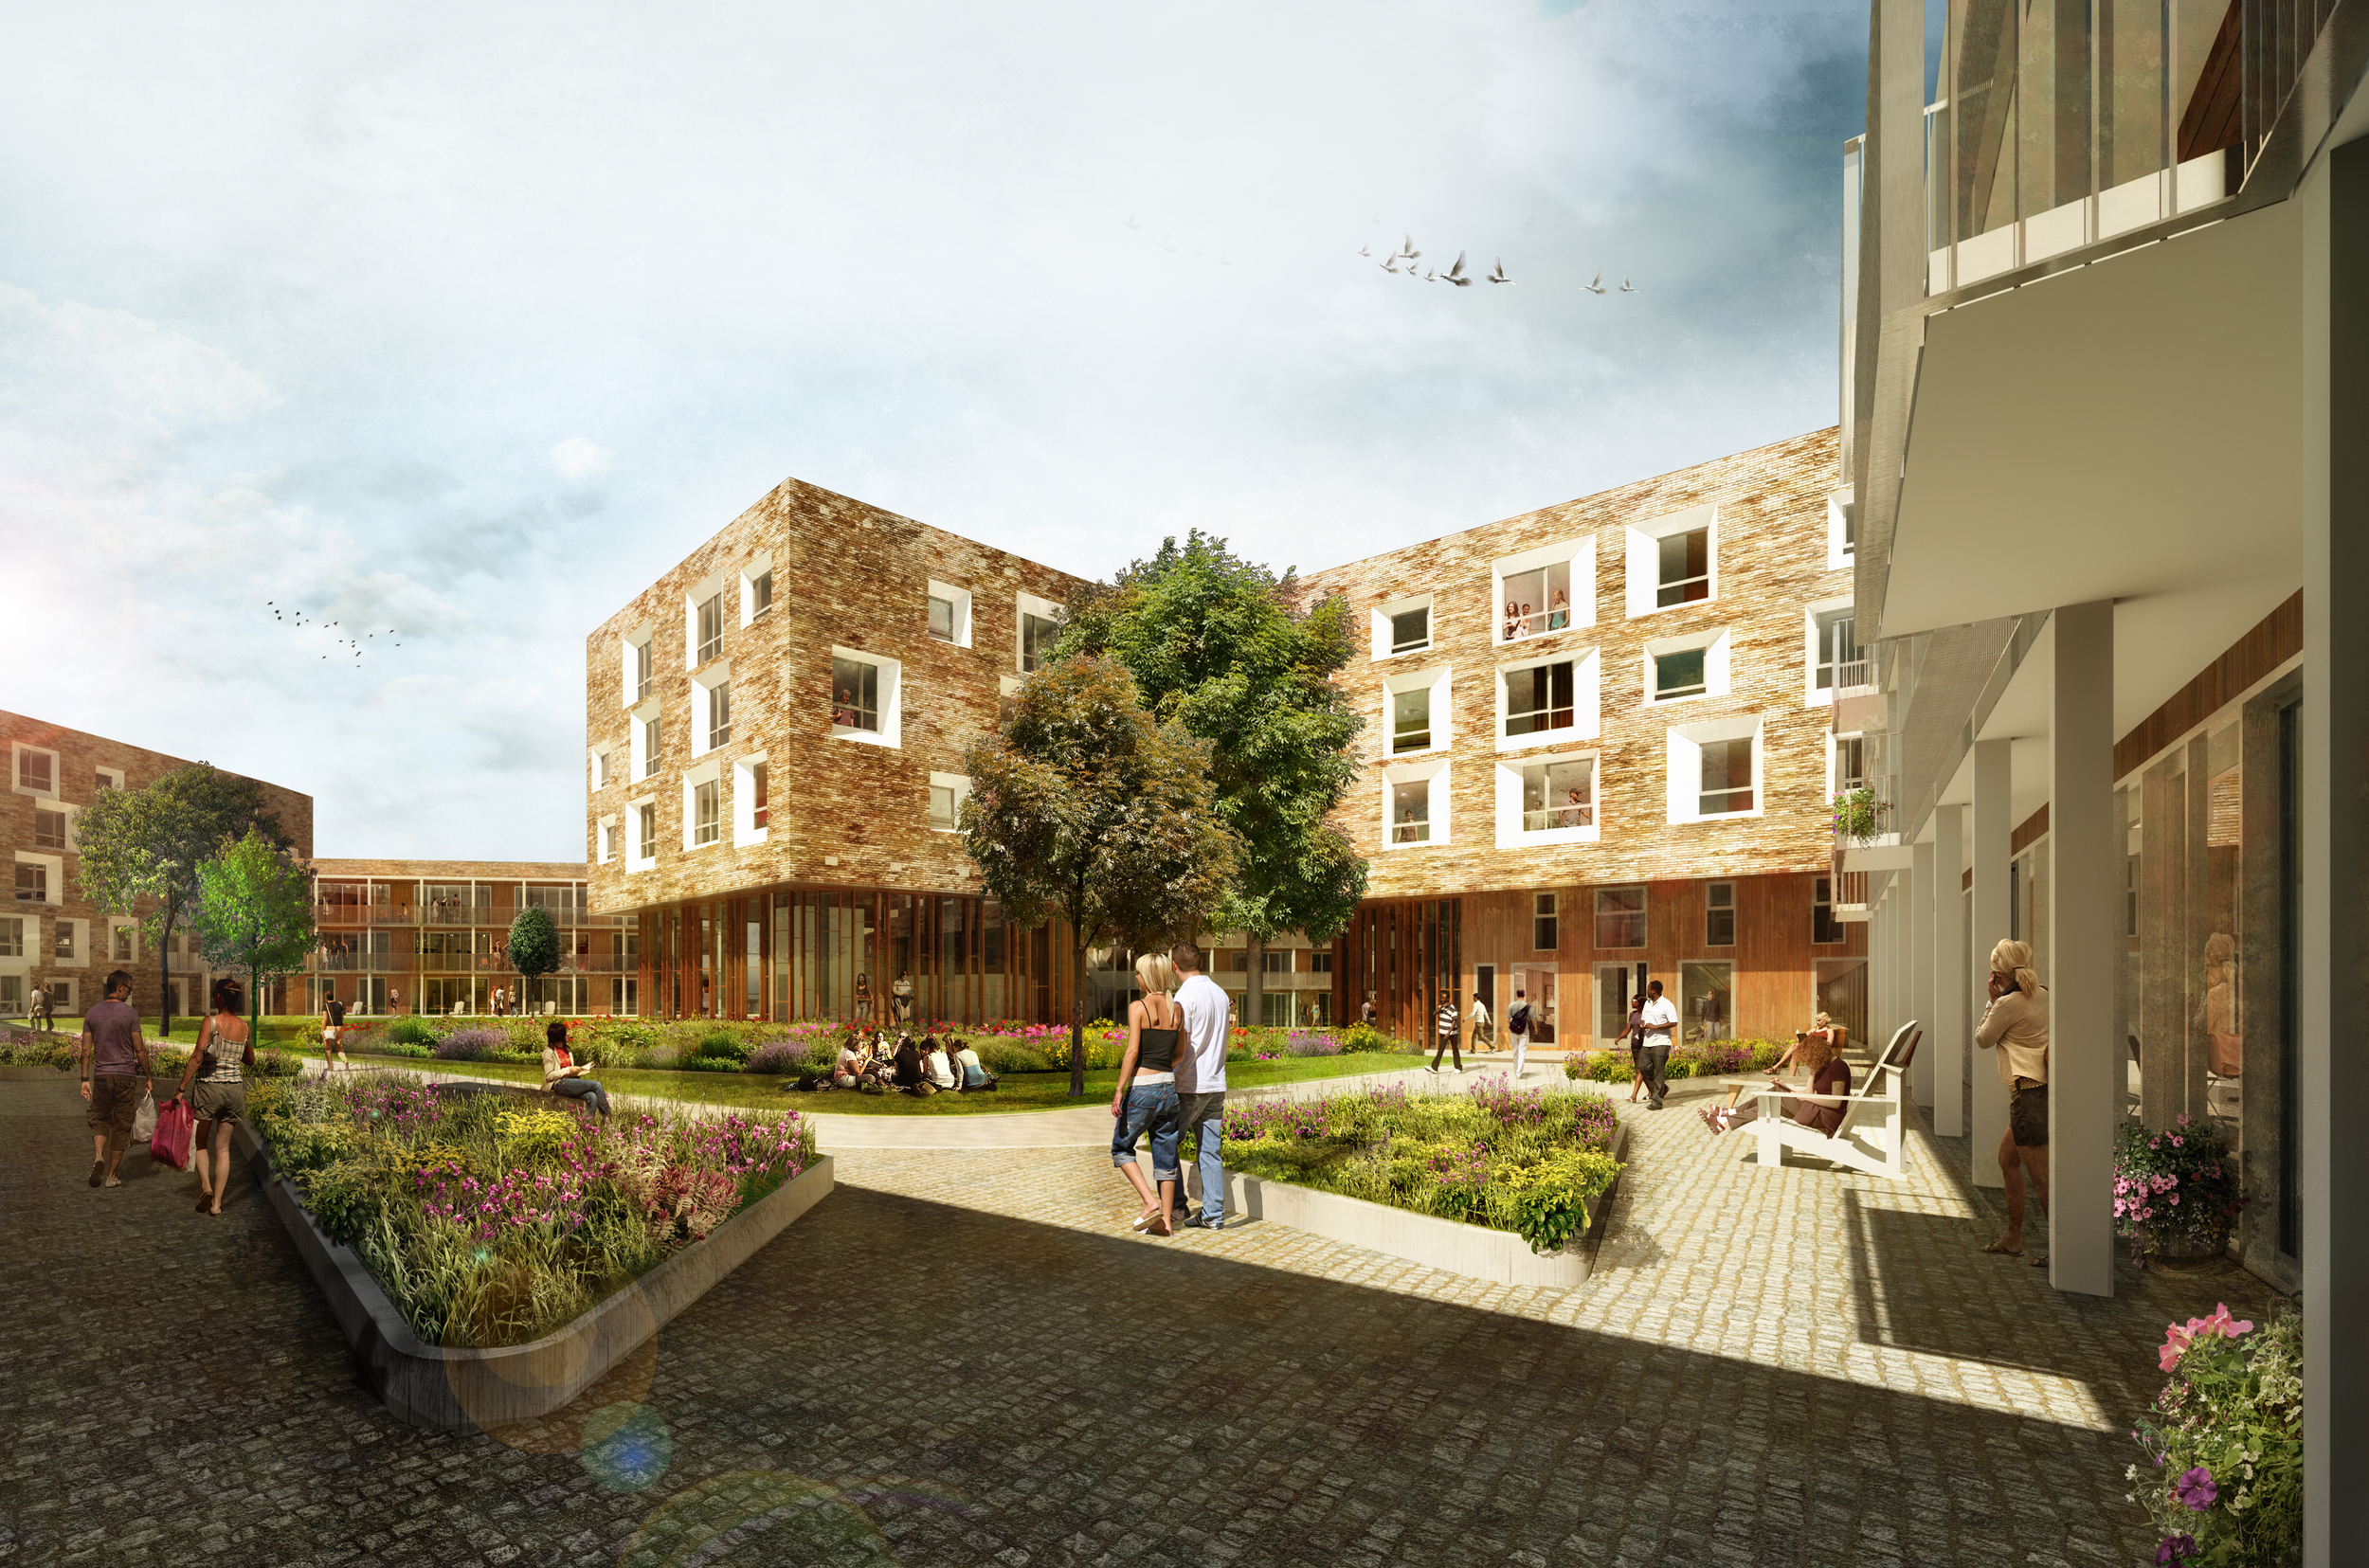 North West Cambridge Masterplan / UK / AECOM Design & Planning